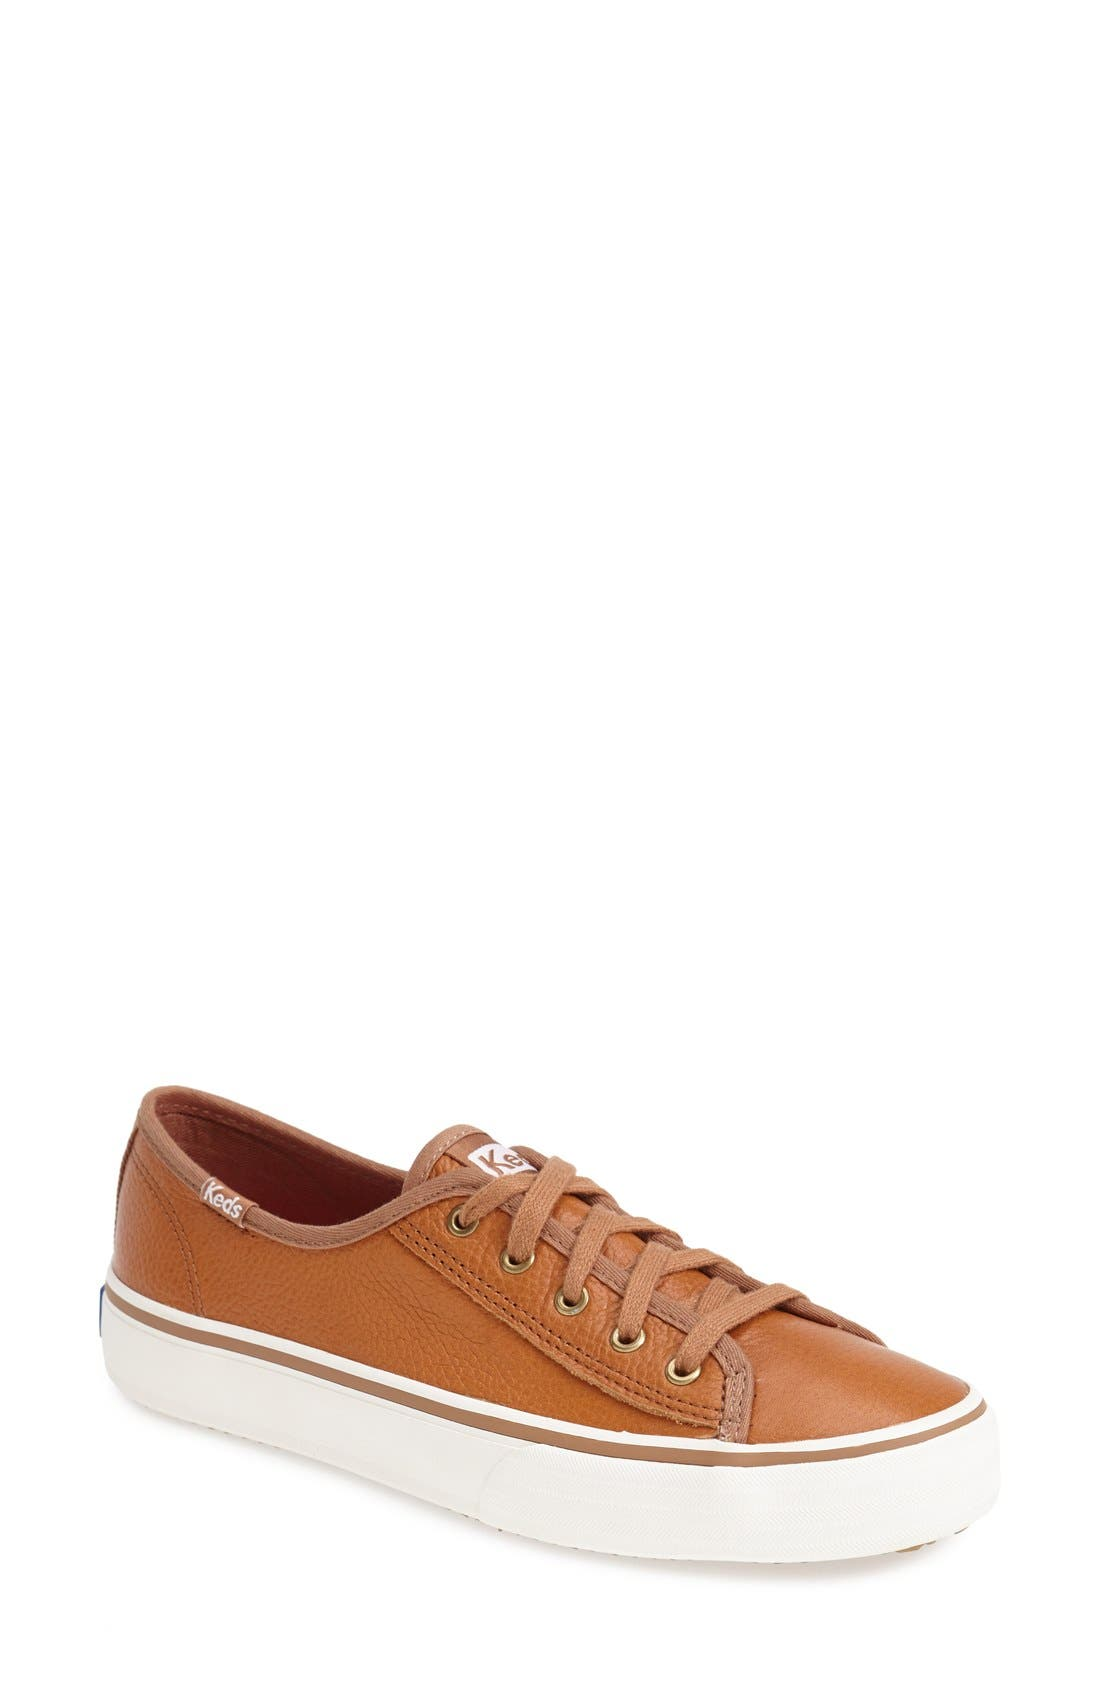 Alternate Image 1 Selected - Keds® 'Crashback - Double Up Leather' Sneaker (Women)